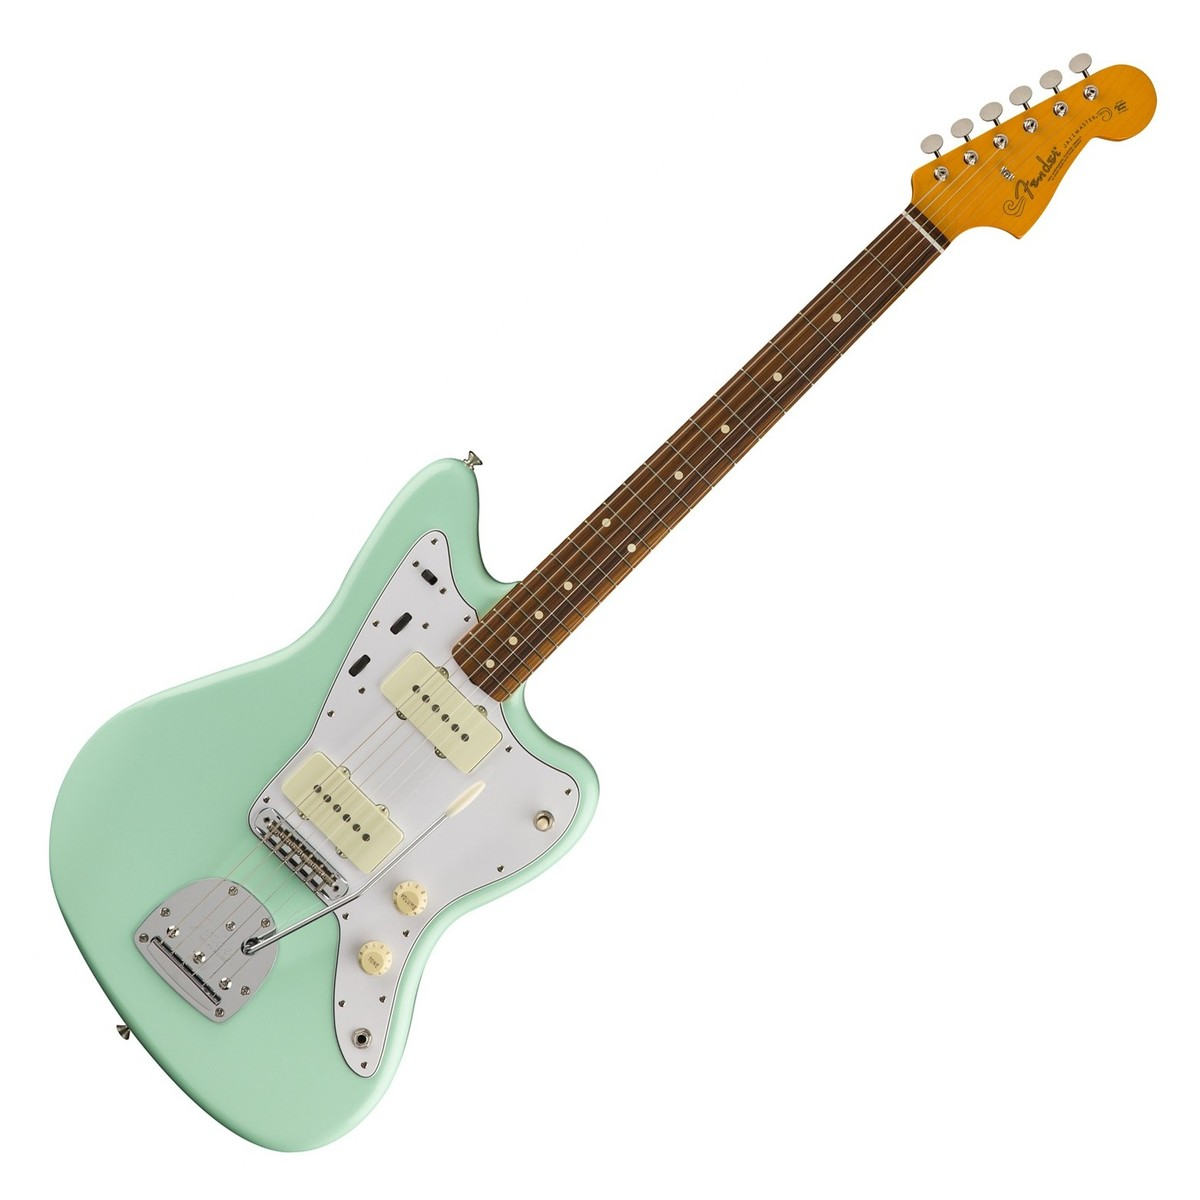 fender 60s jazzmaster lacquer electric guitar pau ferro surf green at gear4music. Black Bedroom Furniture Sets. Home Design Ideas